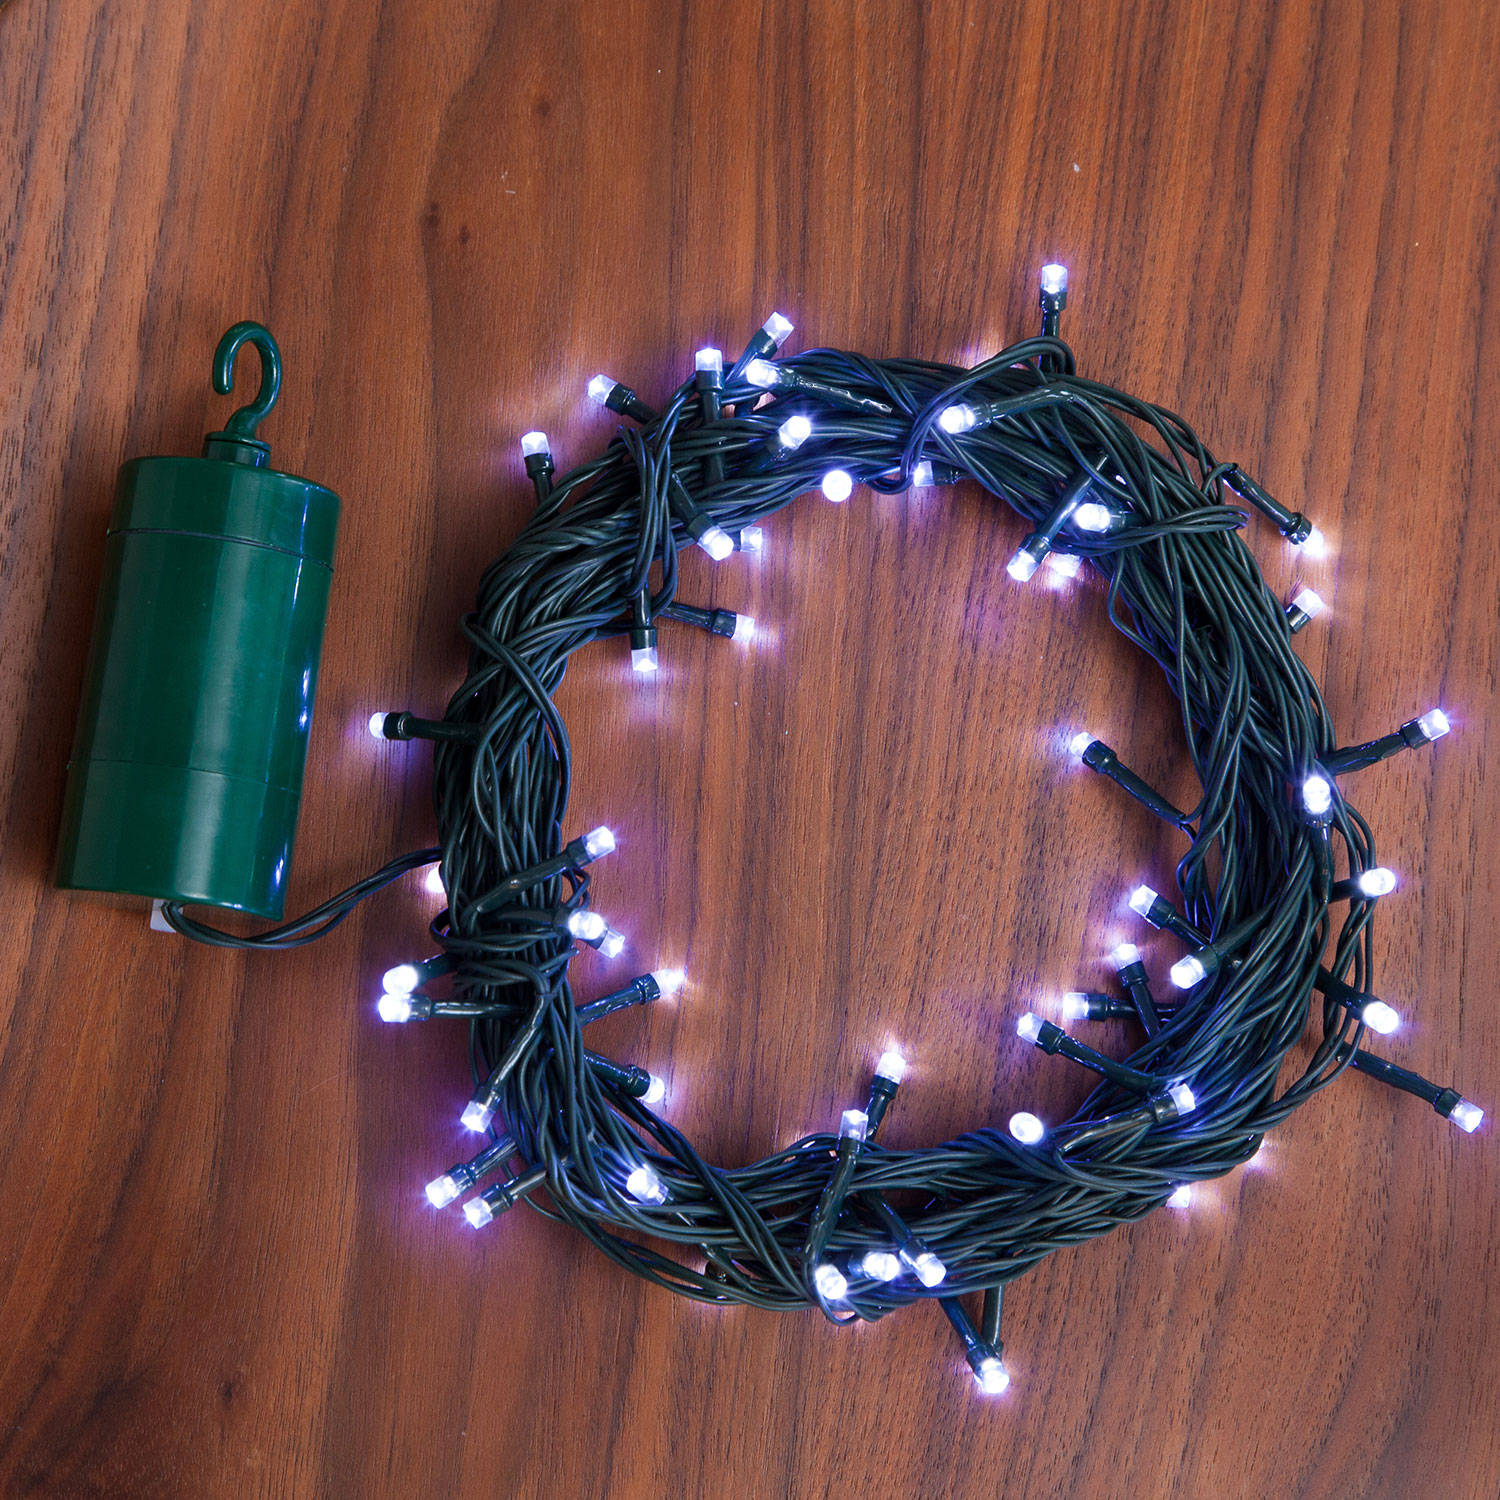 open image - Where To Buy Christmas Lights Year Round